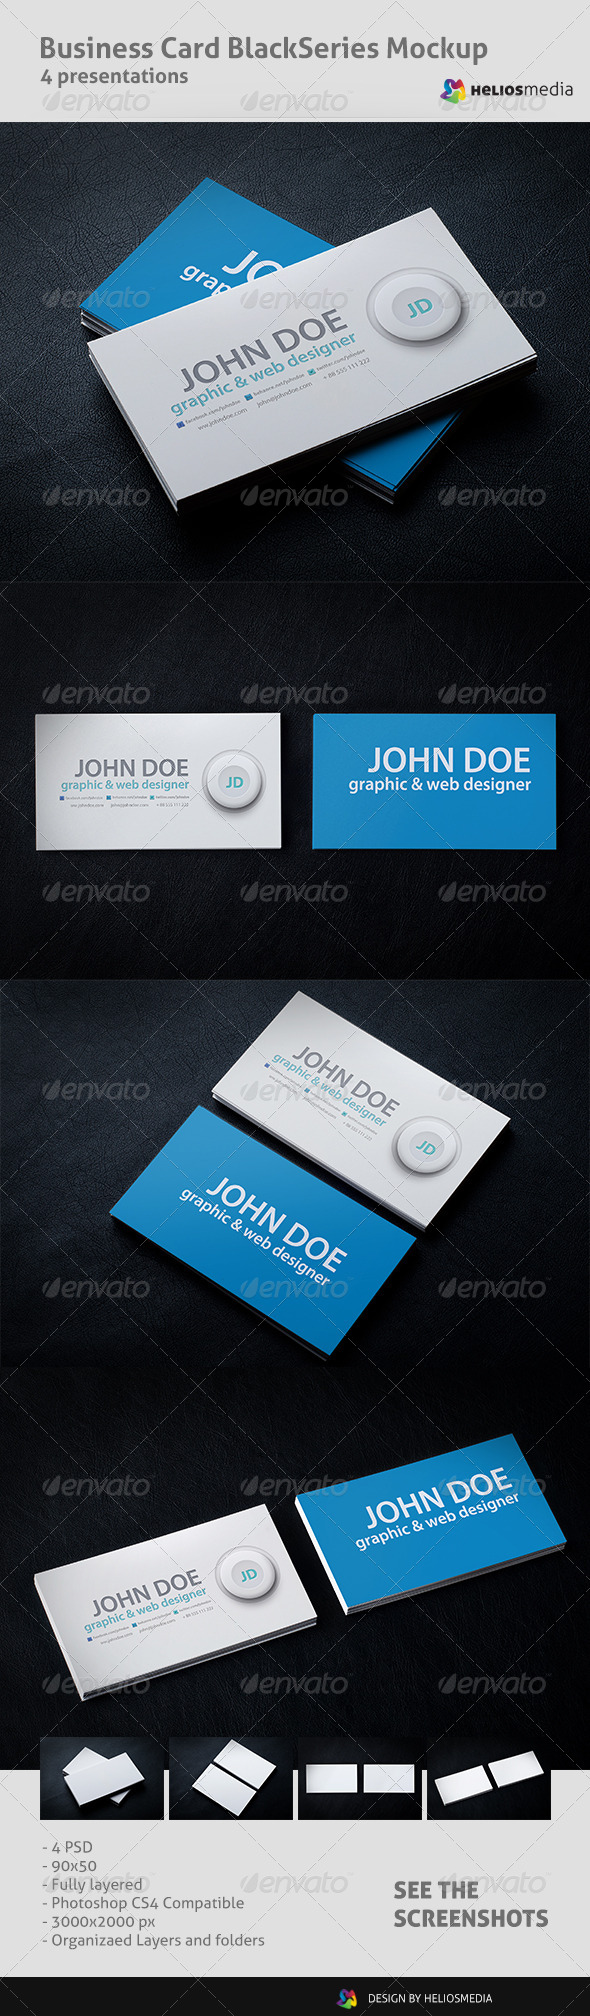 Business Card BlackSeries Mockup - Business Cards Print